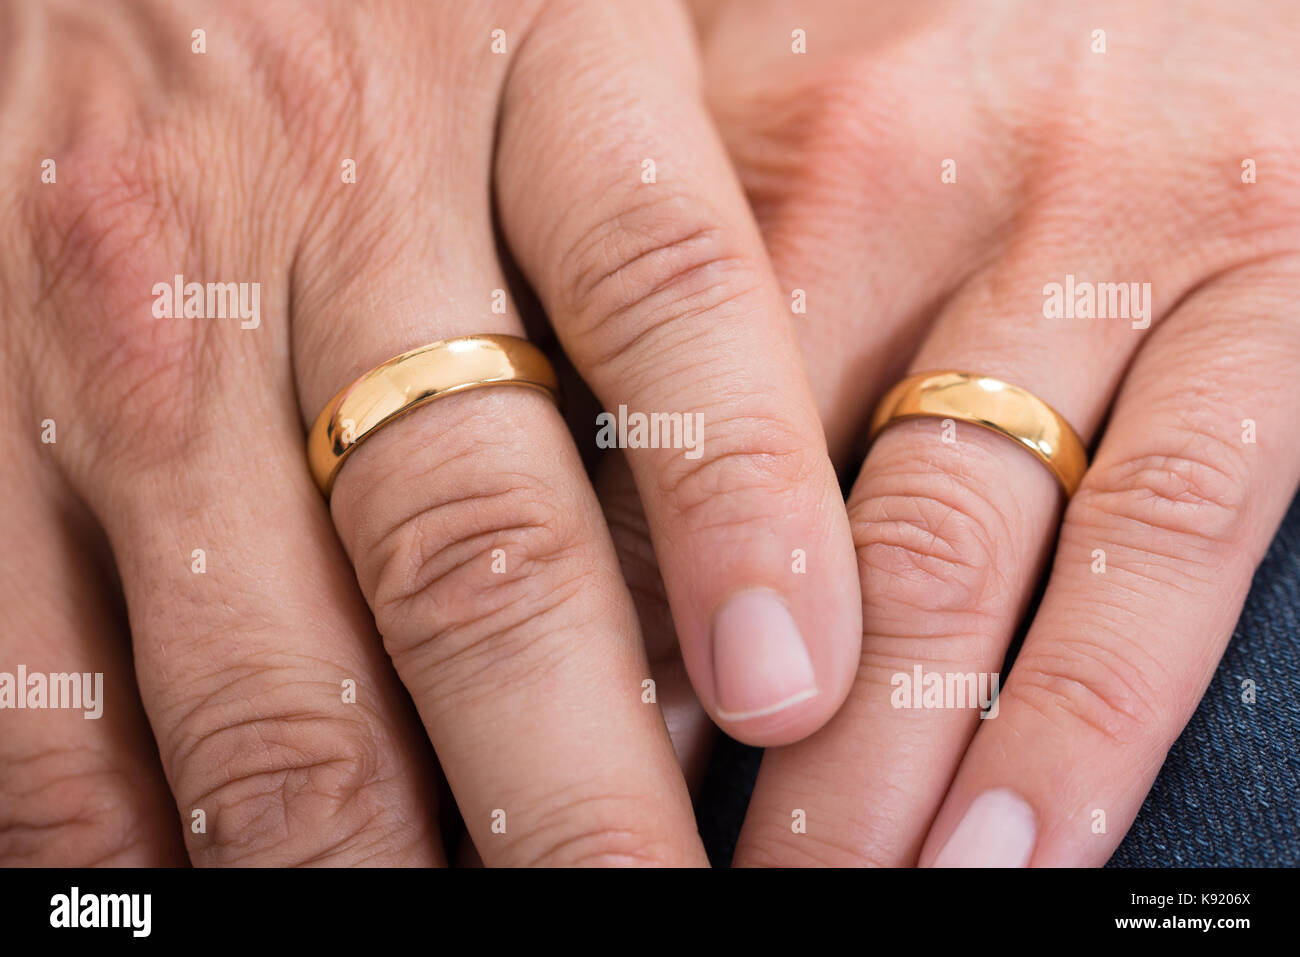 Close-up Of Hands With Golden Wedding Rings Stock Photo: 160469314 ...